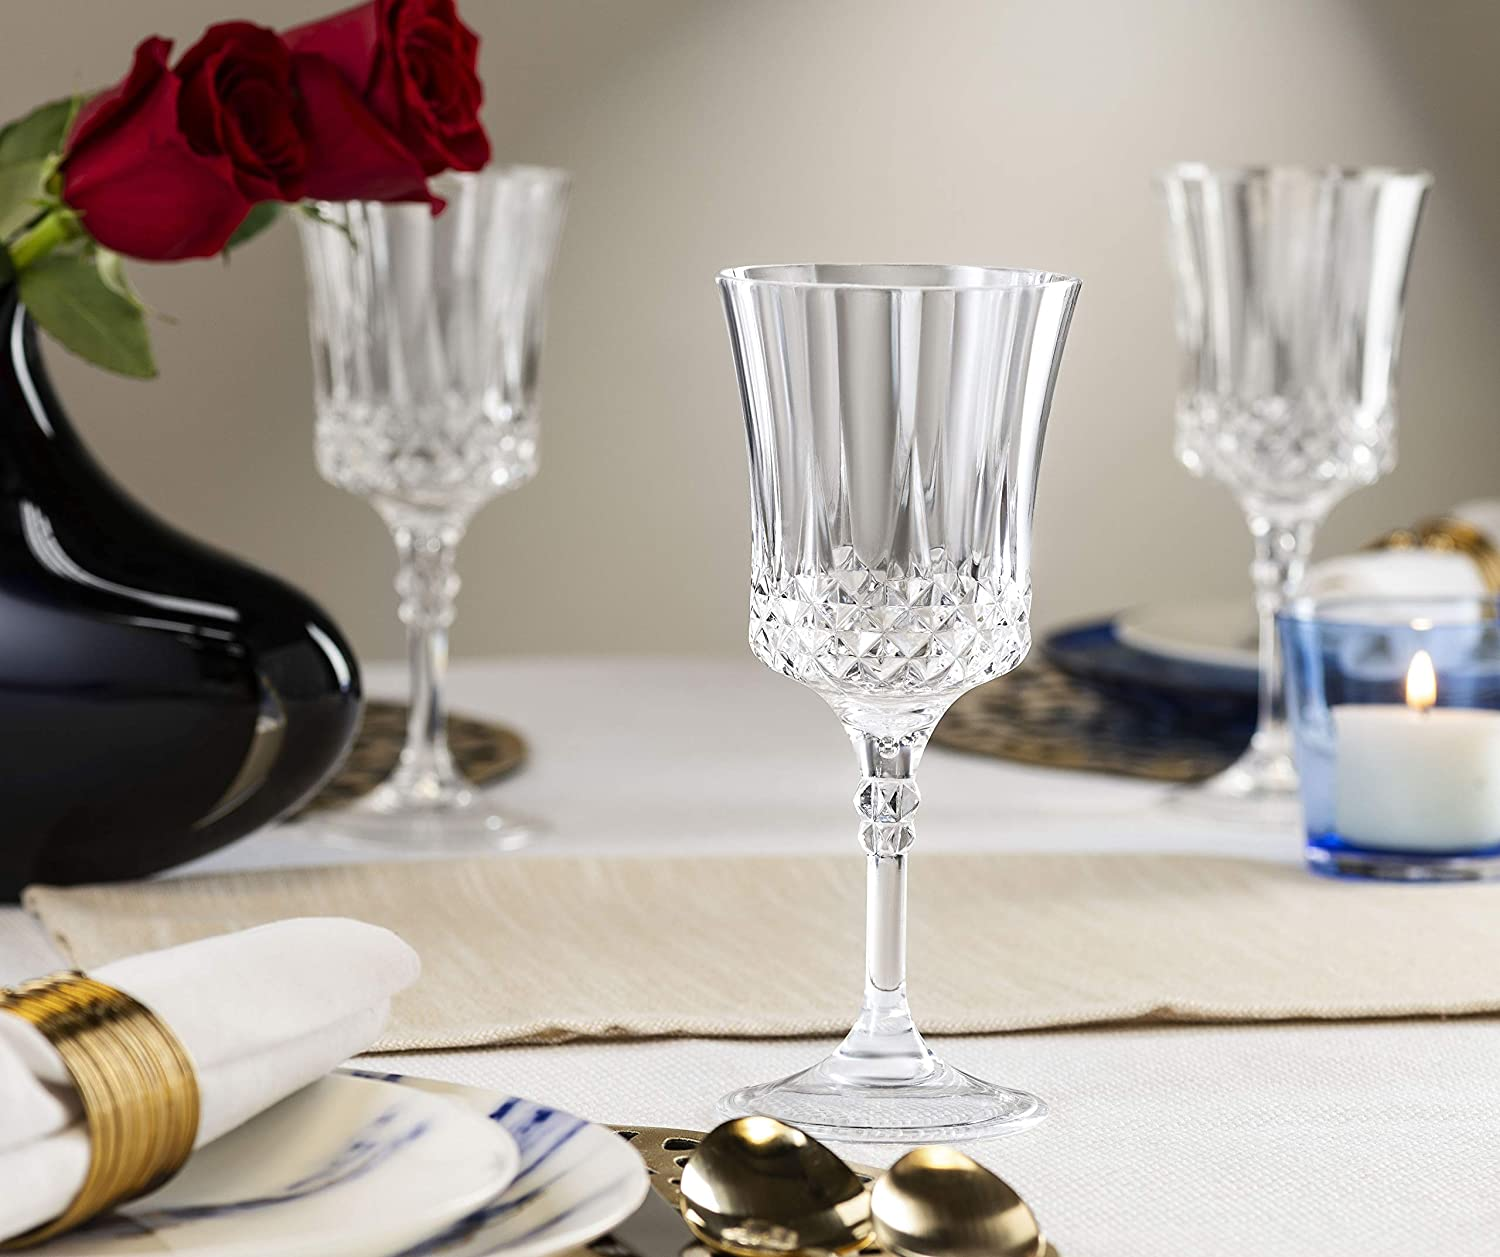 Mixed Drinks Elegant Round Drinking Cups For Water Great For Wedding Reception Or The Everyday Party Laura Stein 4 Pack Disposable Heavy Weight Plastic Crystal Style Highball Glasses Or Soda Beer